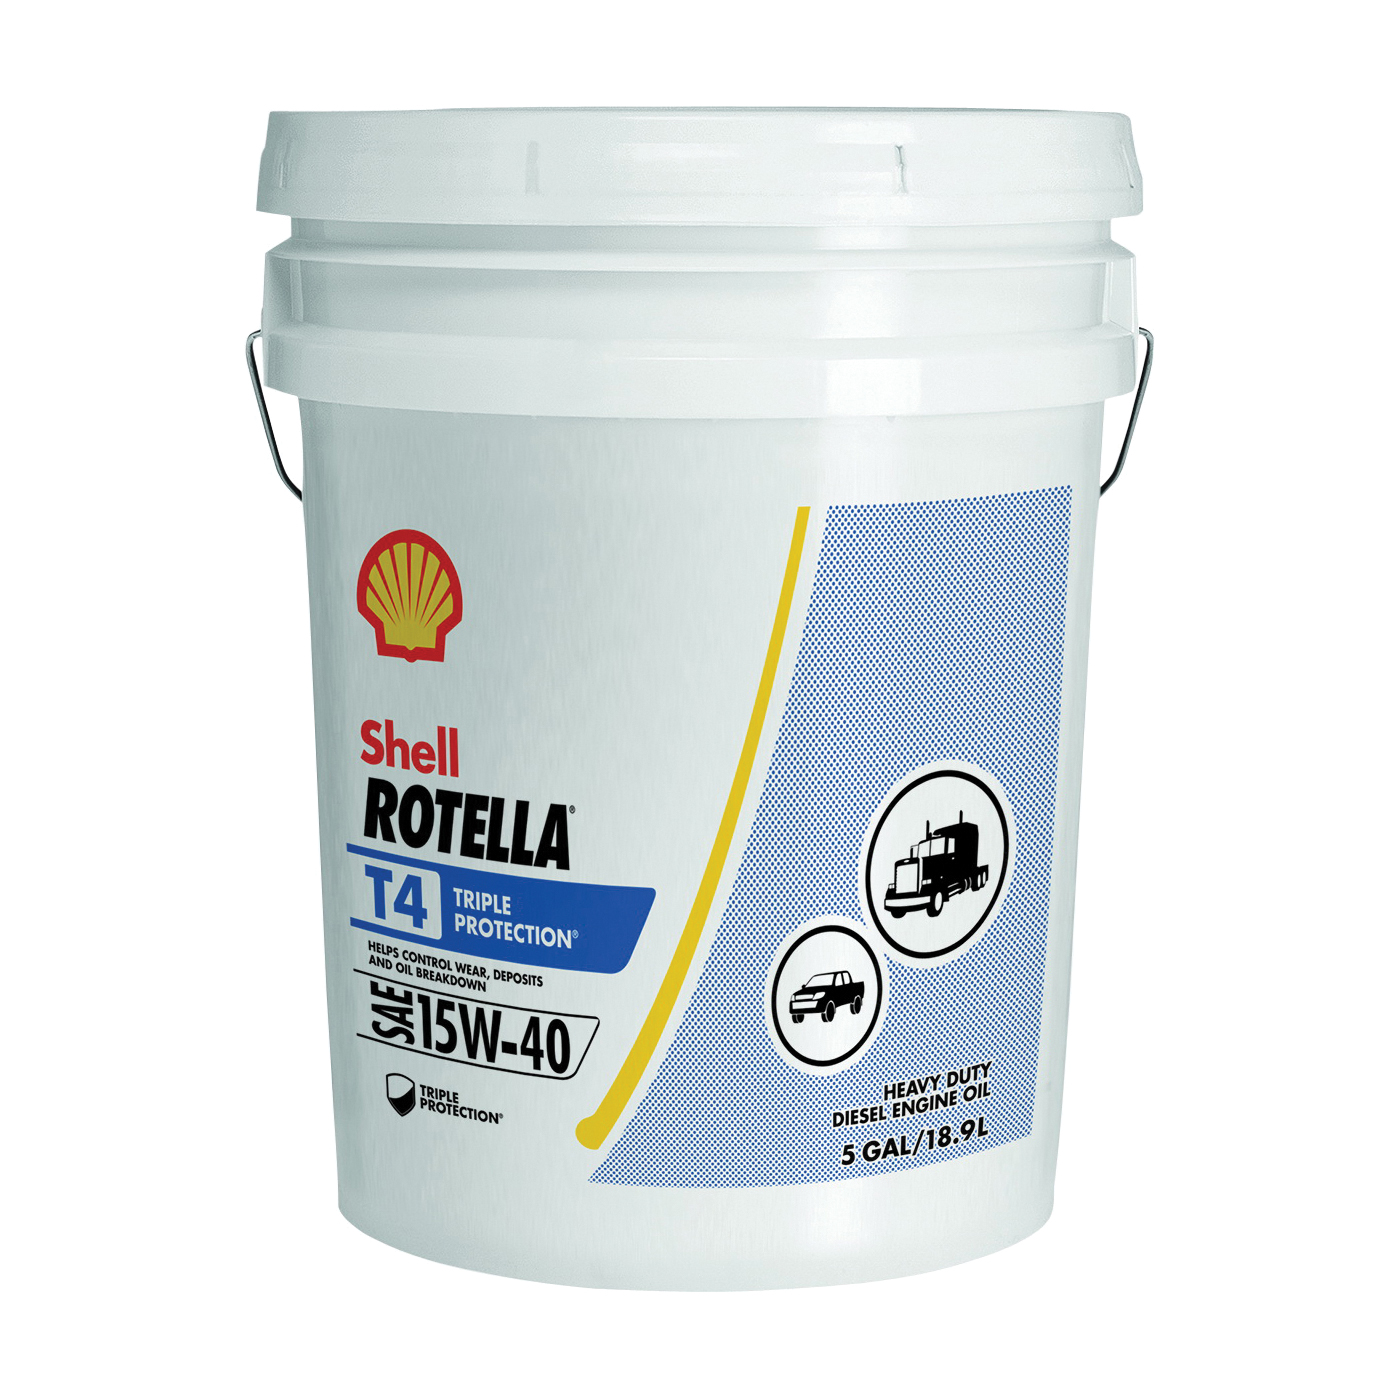 Picture of Shell Rotella T4 Series 550045128 Engine Oil, 15W-40, 5 gal Package, Pail